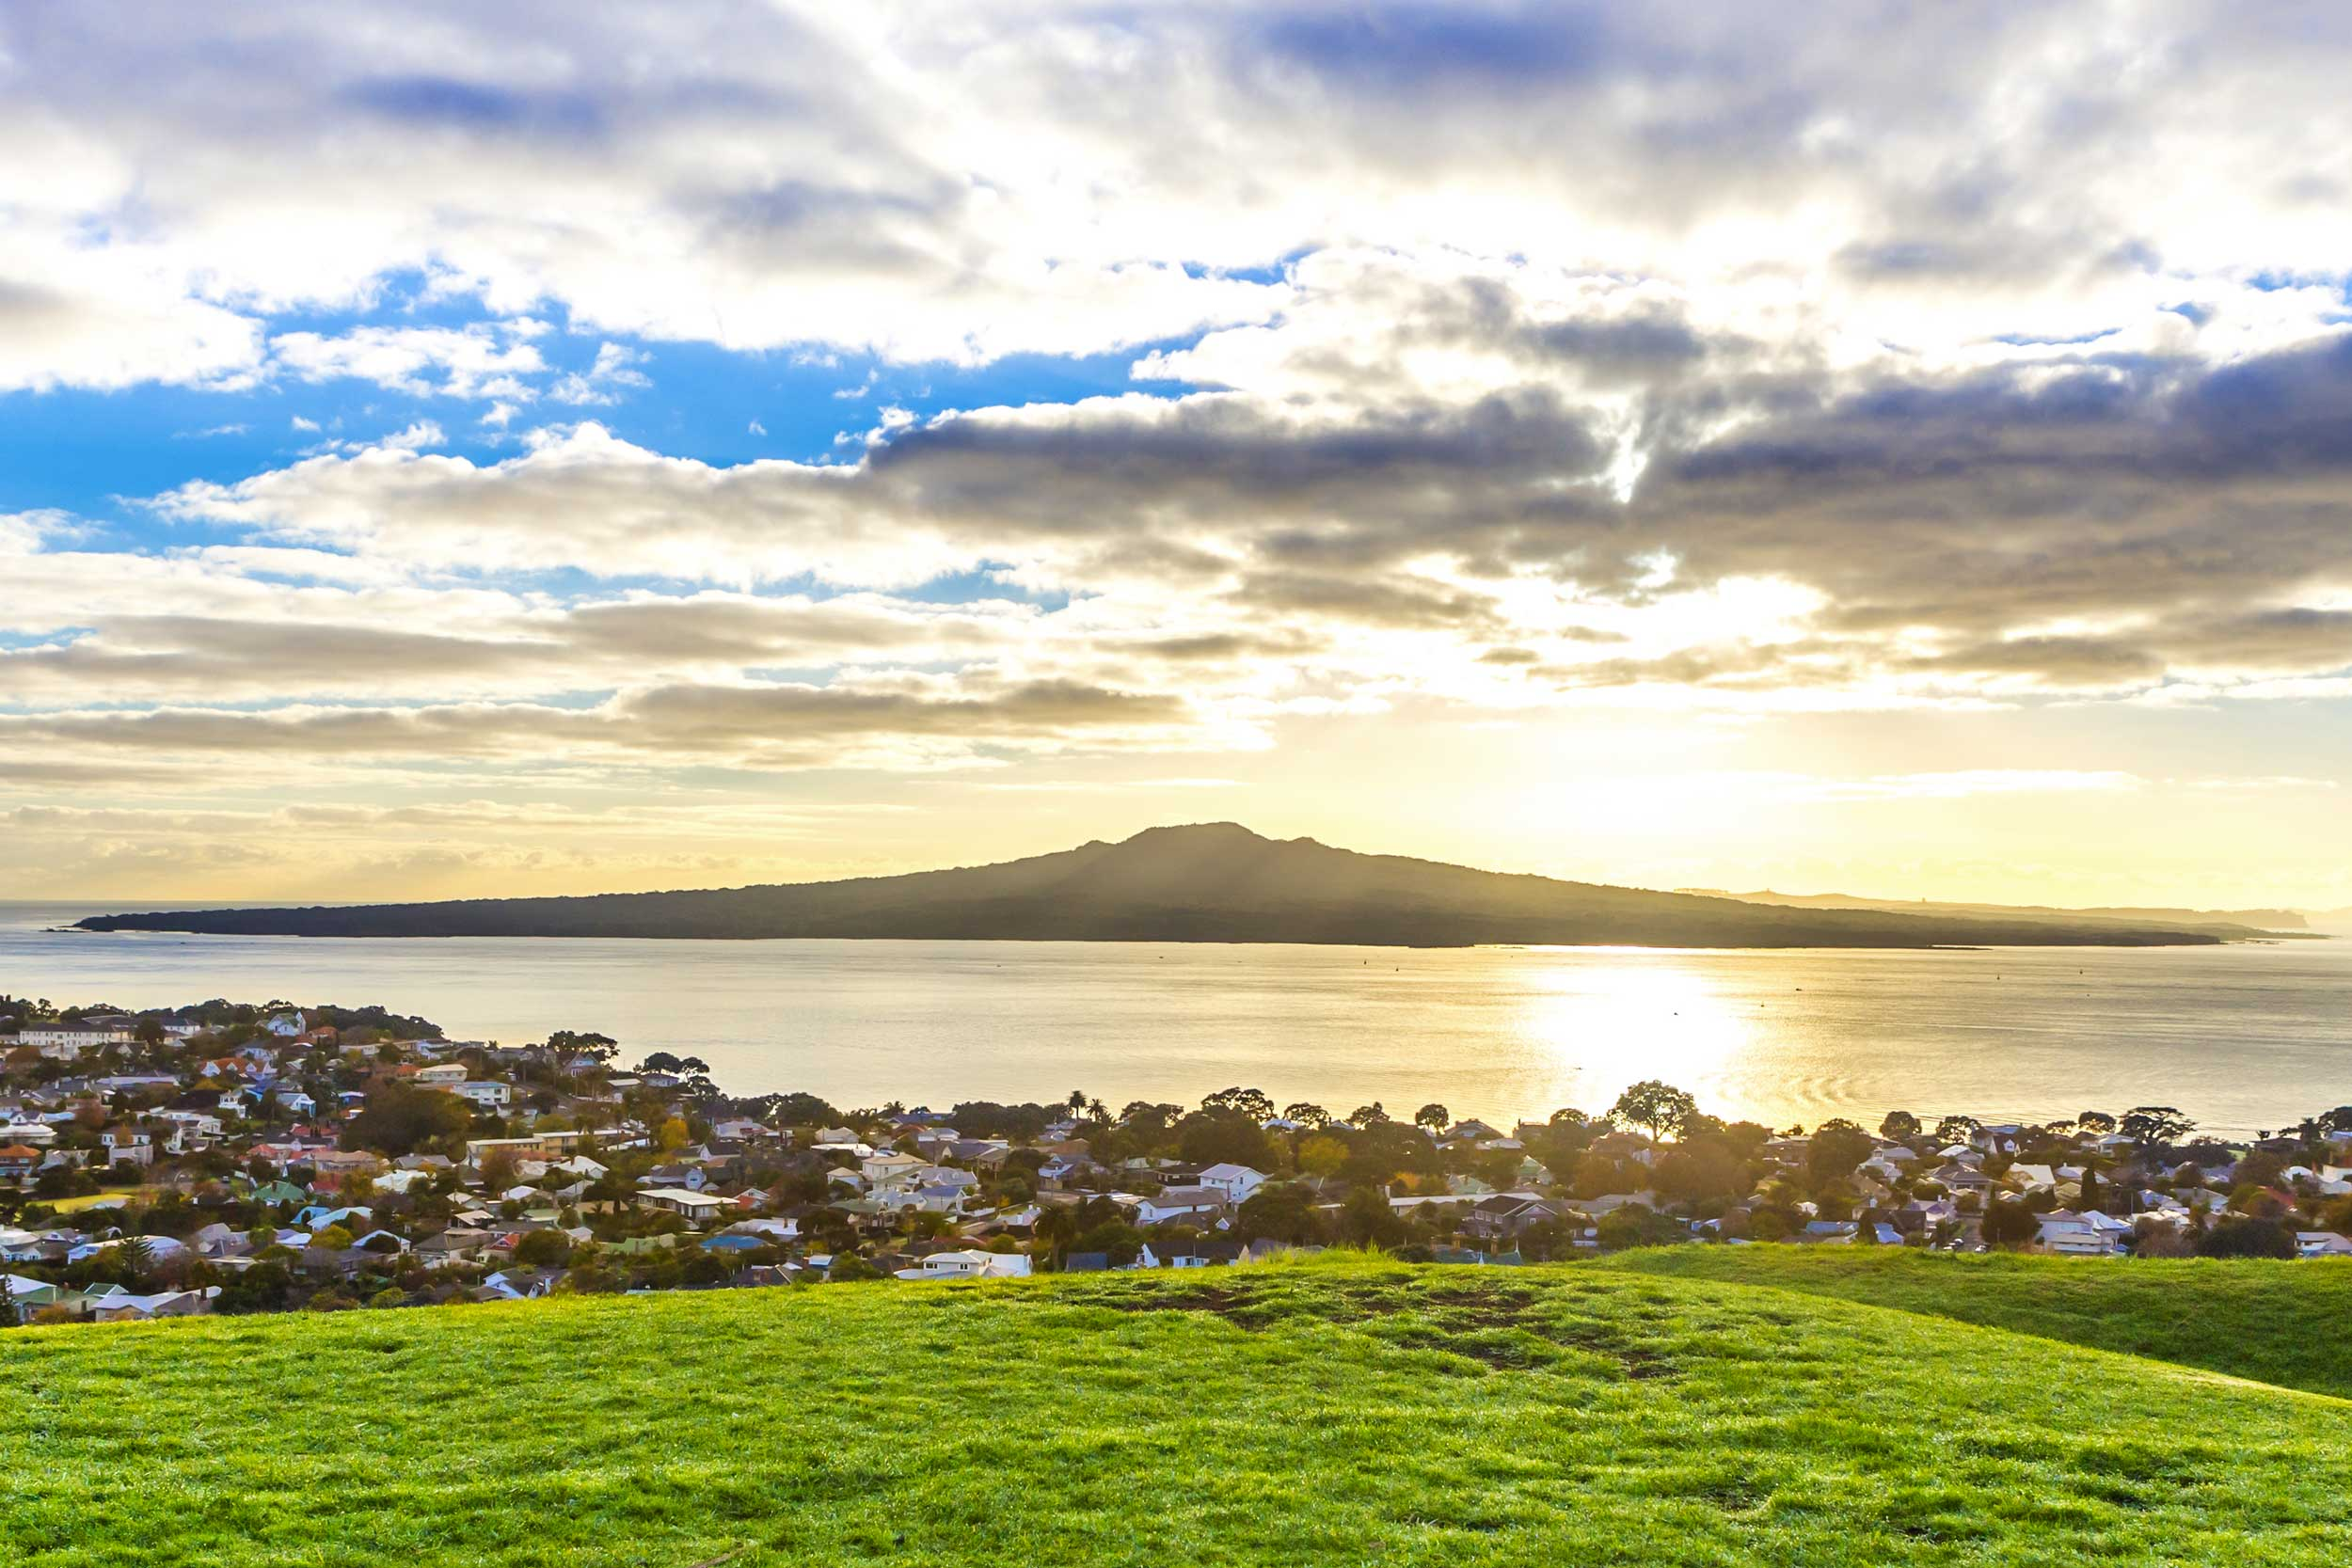 A volcanic cone rising out of the sea in the distance seen from Auckland city.